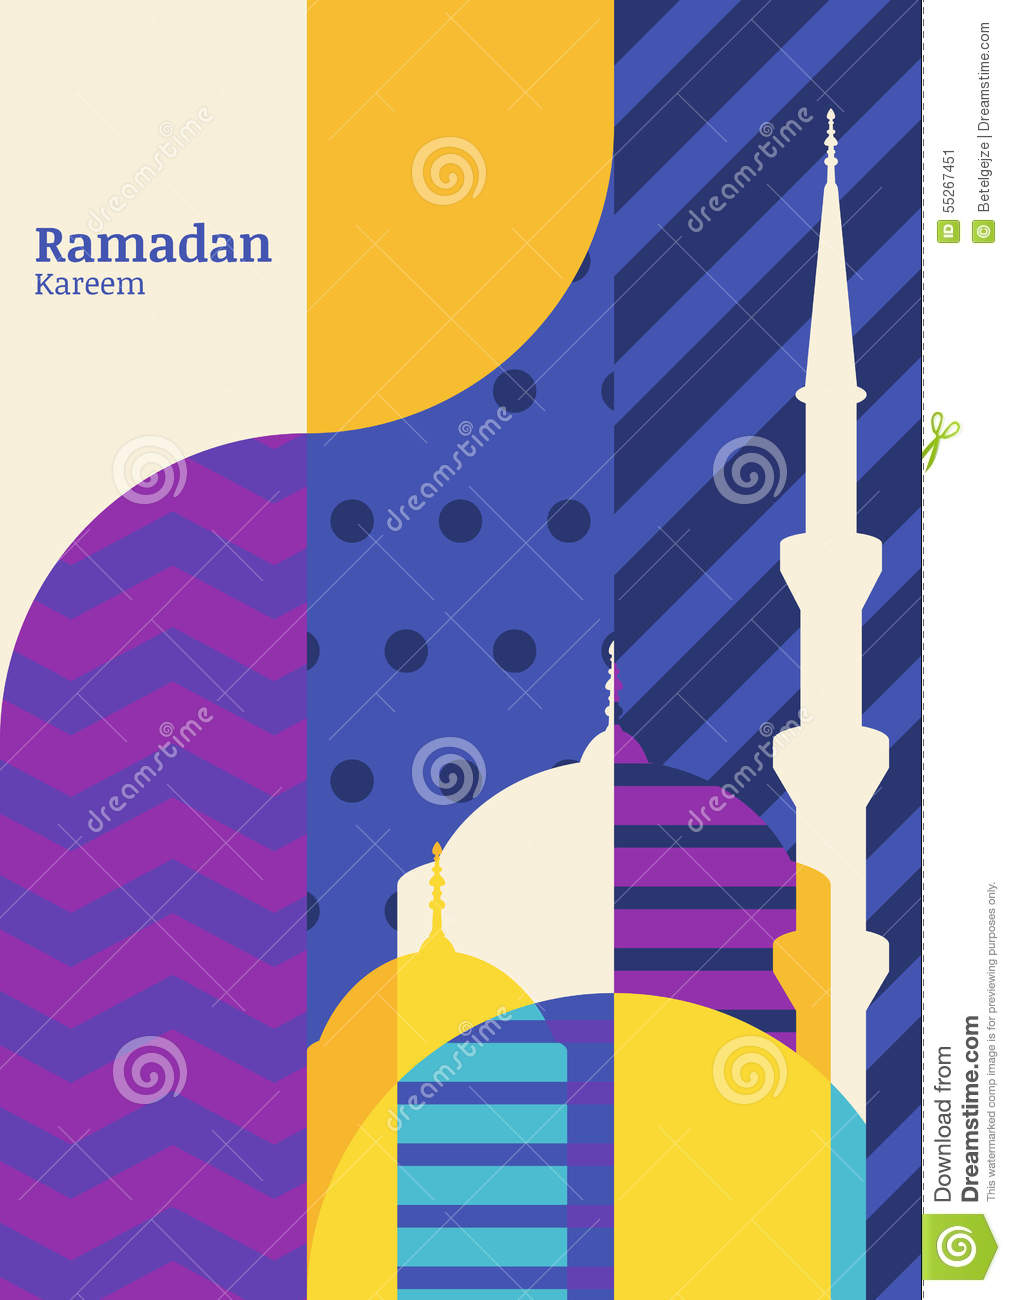 Ramadan vector greeting card, silhouette of mosque with geometric pattern. Abstract flat color blocking vector background. Ramada